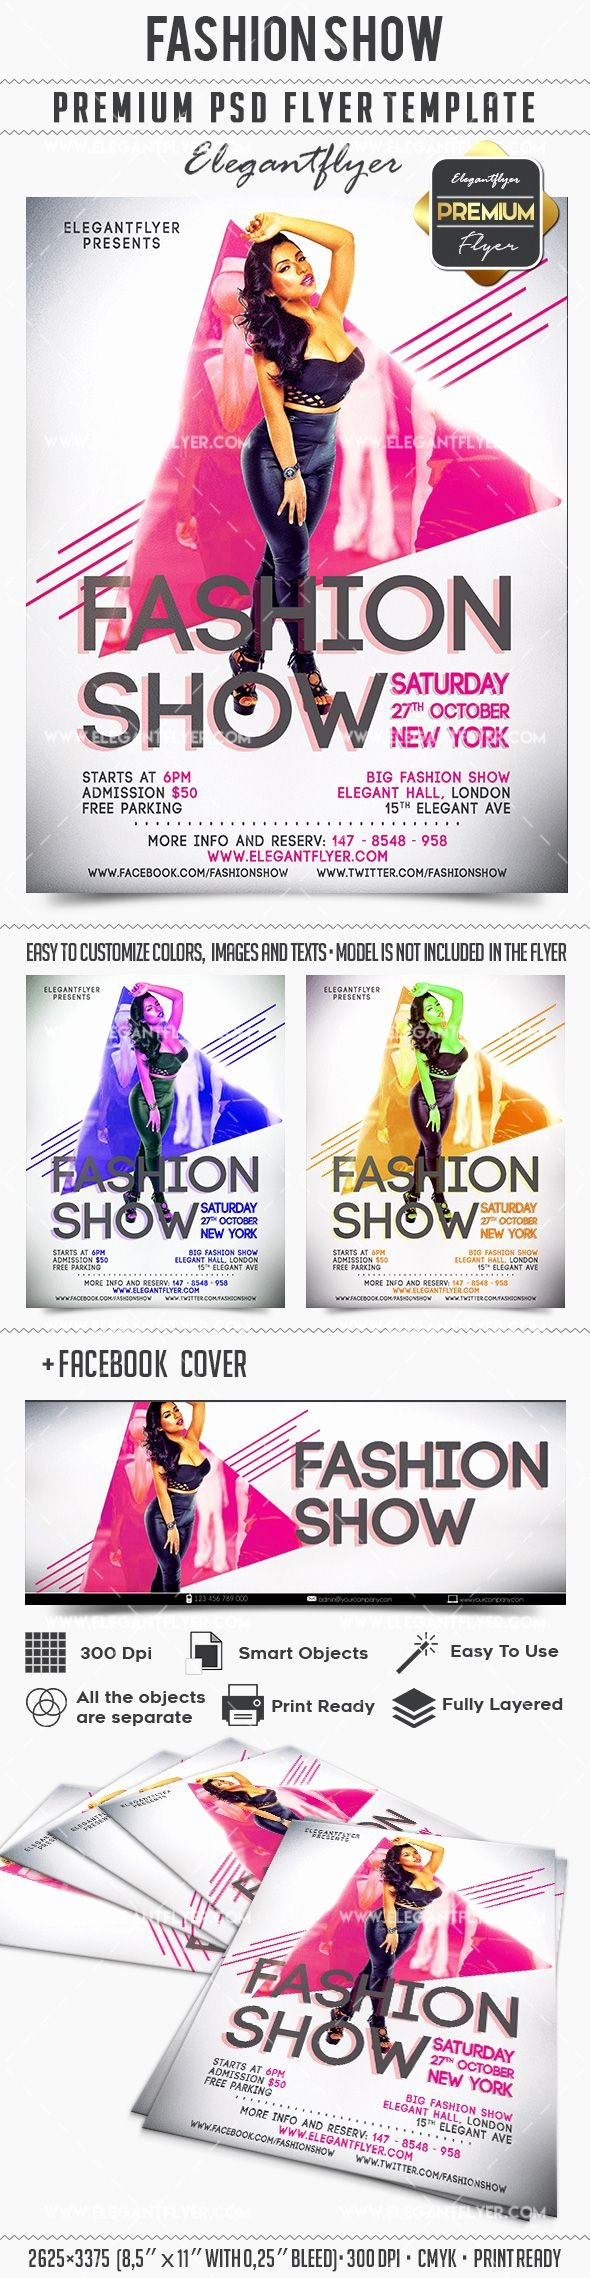 Fashion Show Invitation Flyer Template – by Elegantflyer